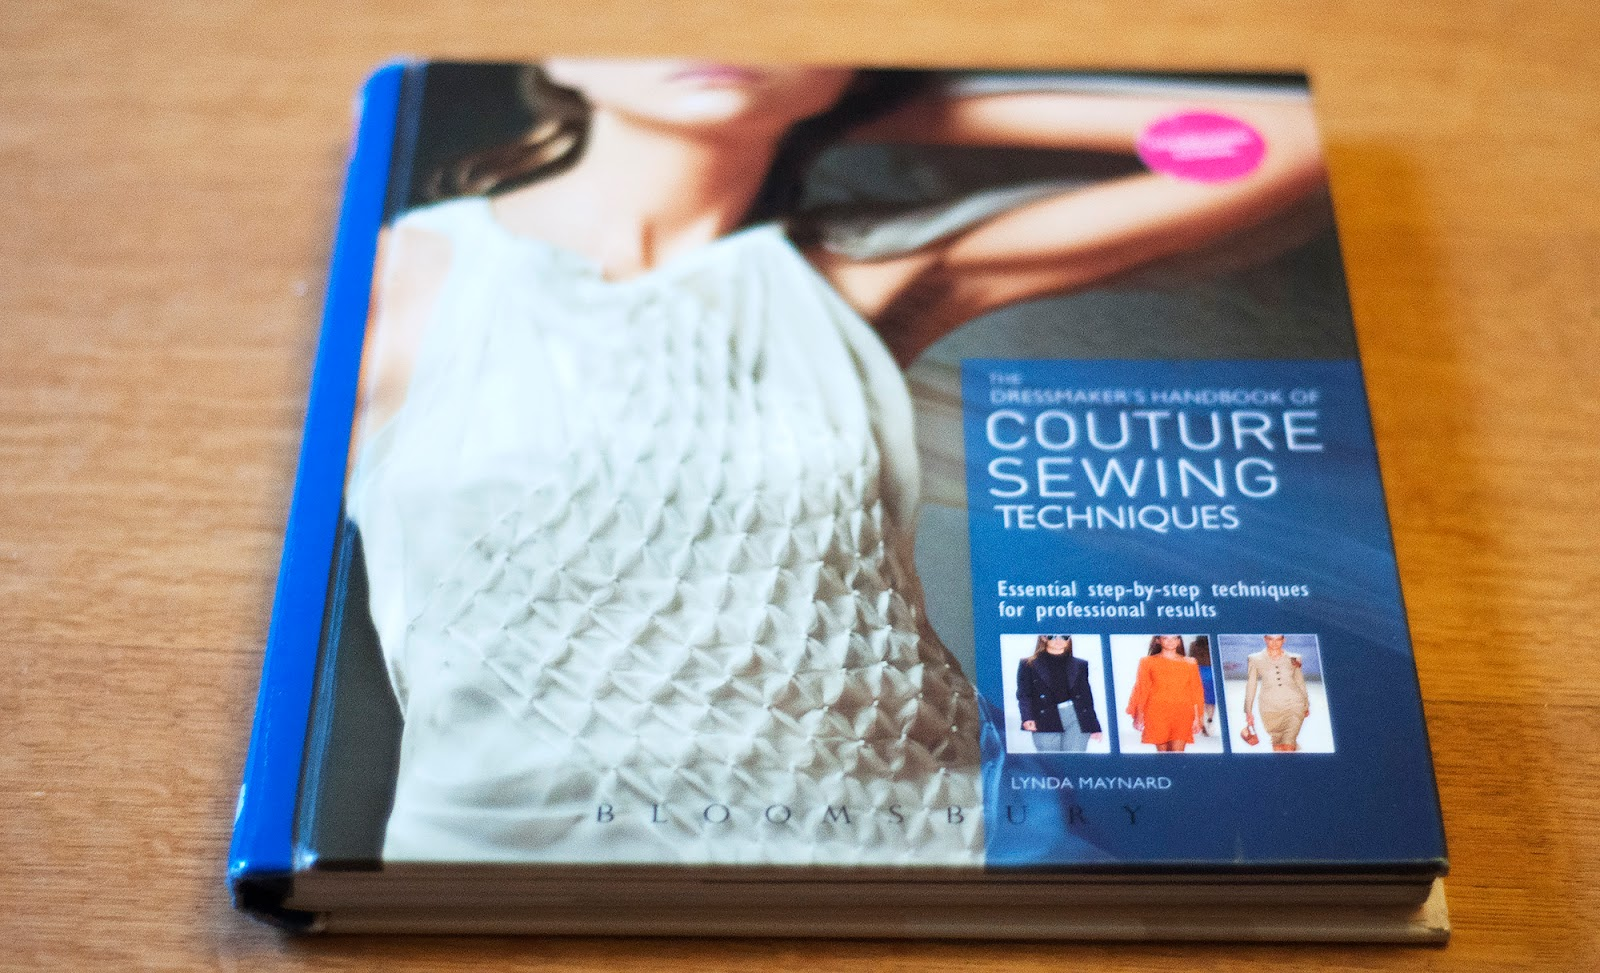 Sewing book Couture sewing